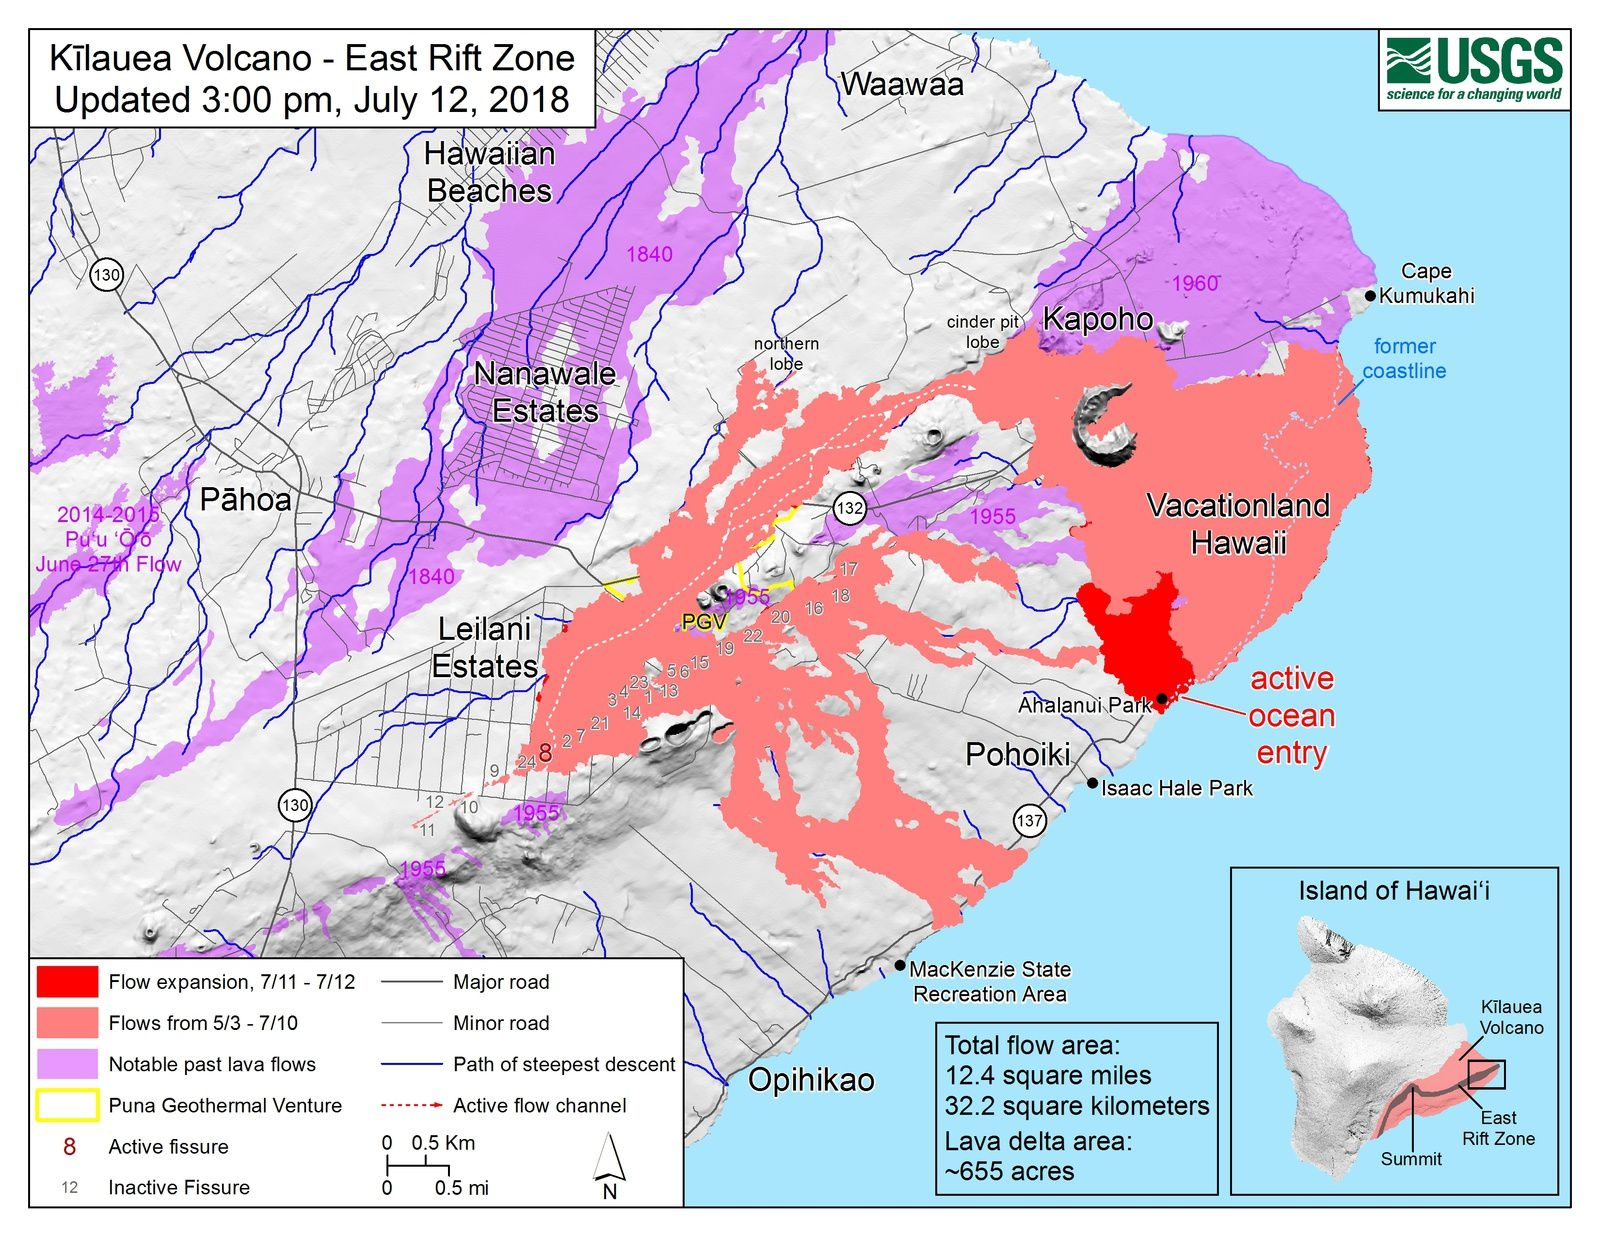 Kilauea East Rift Zone - Map of the flows and new entry at Ahalanui Park - Doc. USGS-HVO